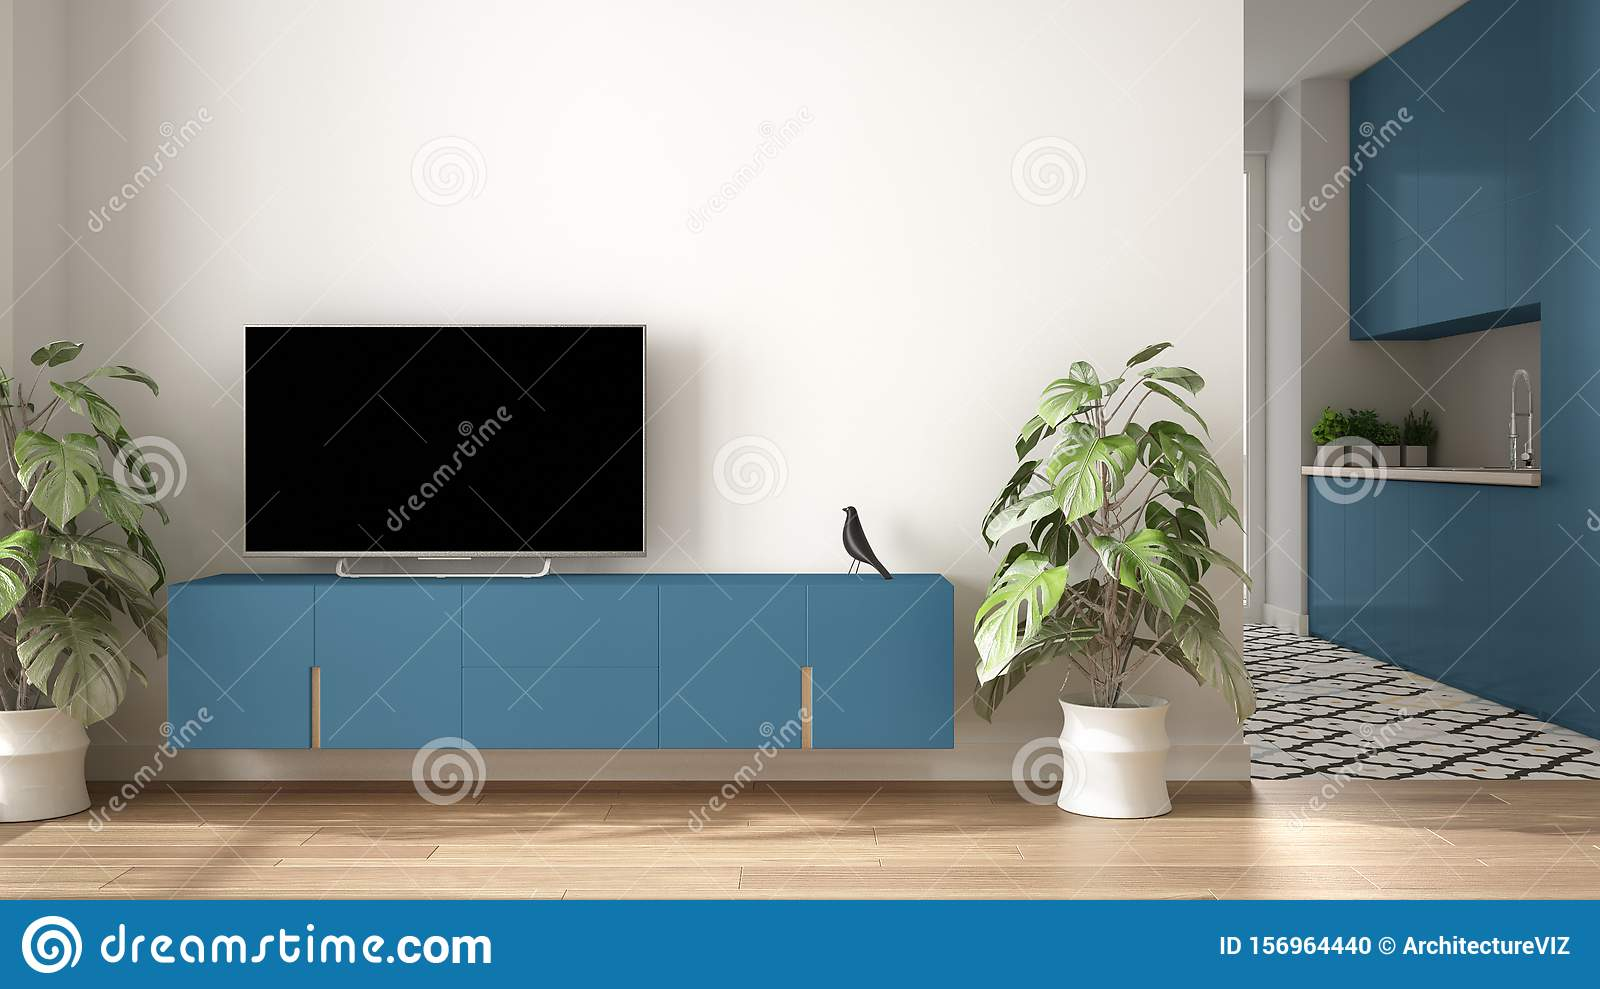 Modern Blue Colored Minimalist Living Room With Small Kitchen Parquet Floor Tv Cabinet Potted Plant Scandinavian Colored Tiles Stock Photo Image Of Potted Architectural 156964440